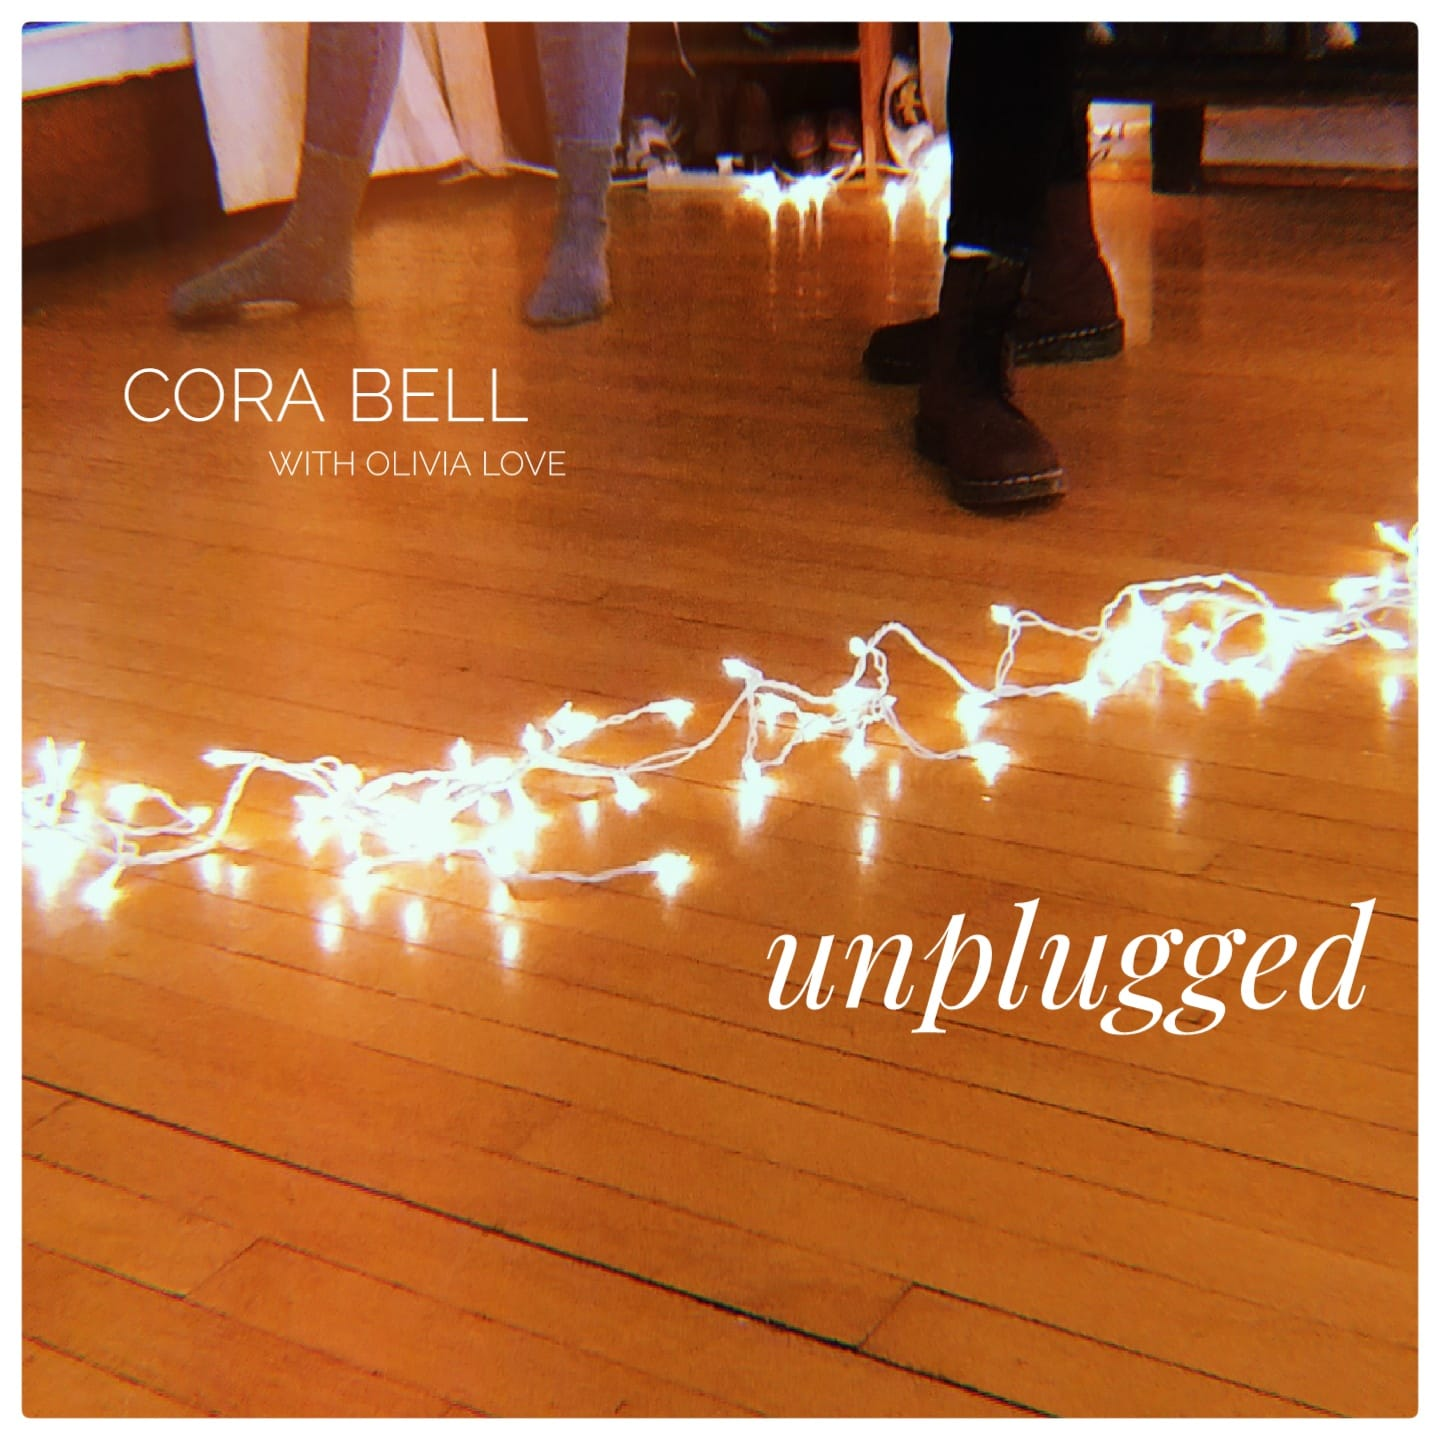 Cora Bell unplugged 1